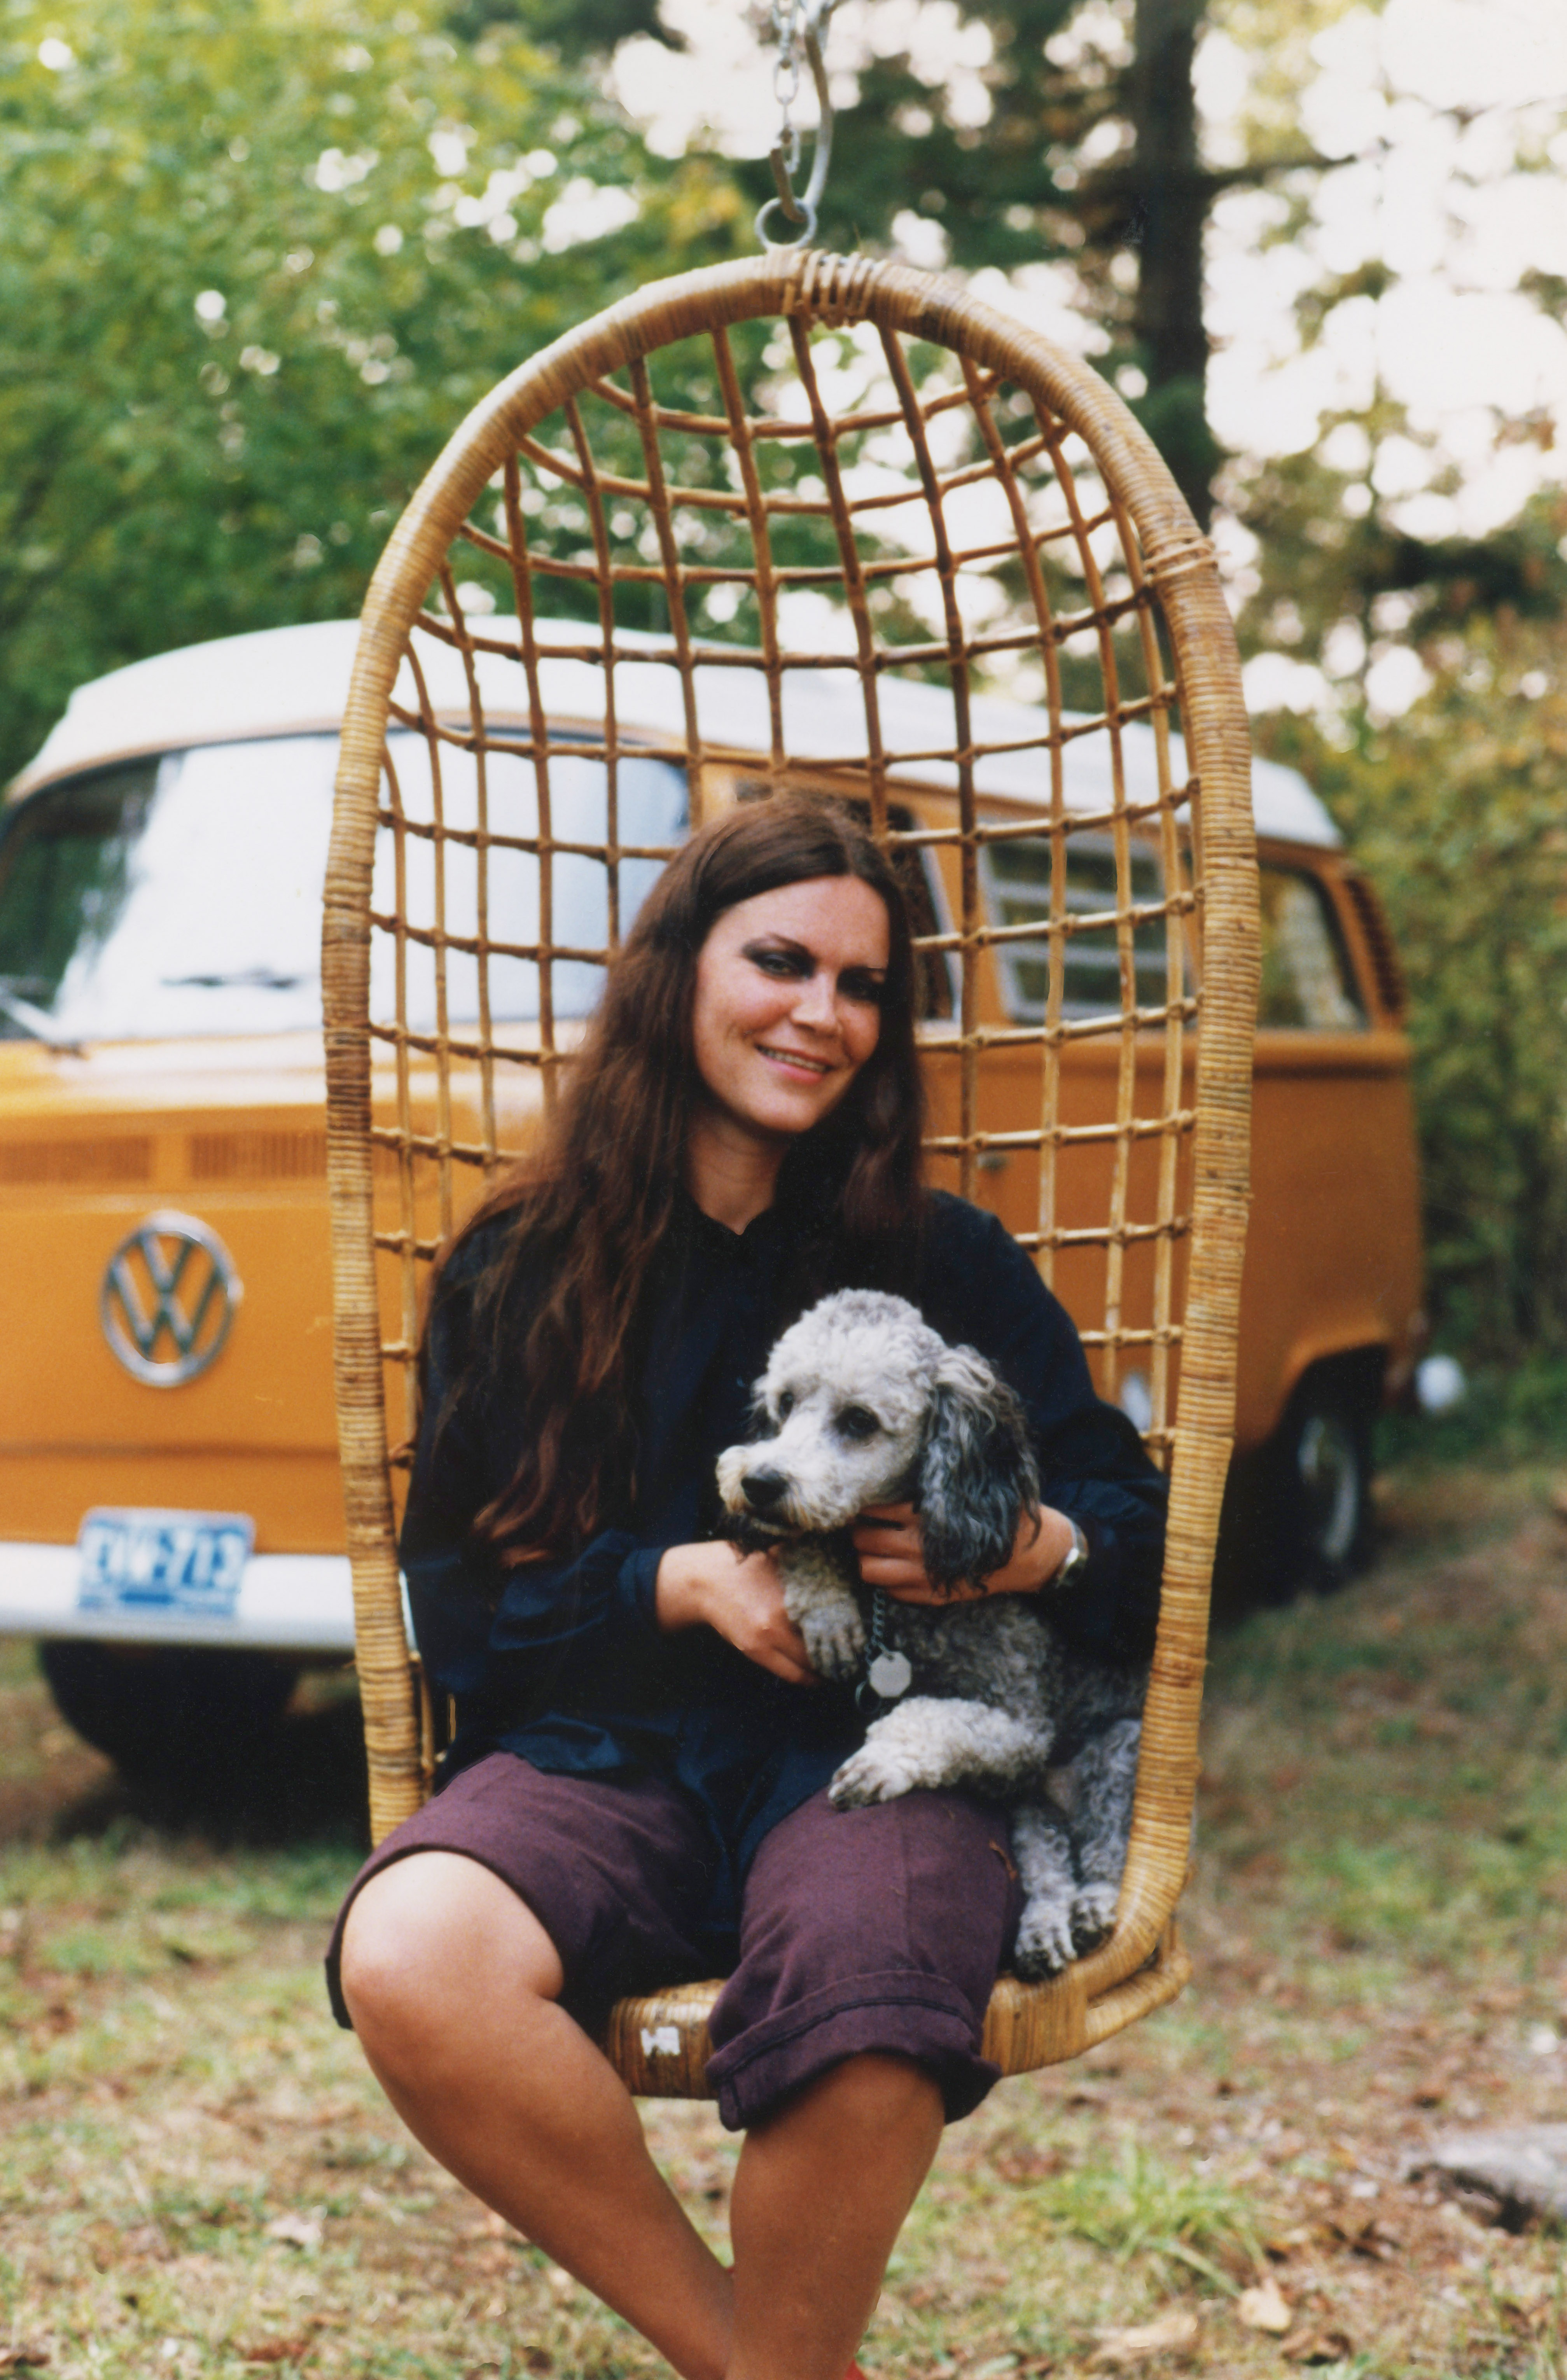 Susan as a young woman sitting in a hanging-basket chair, relaxing with the family dog at the cottage